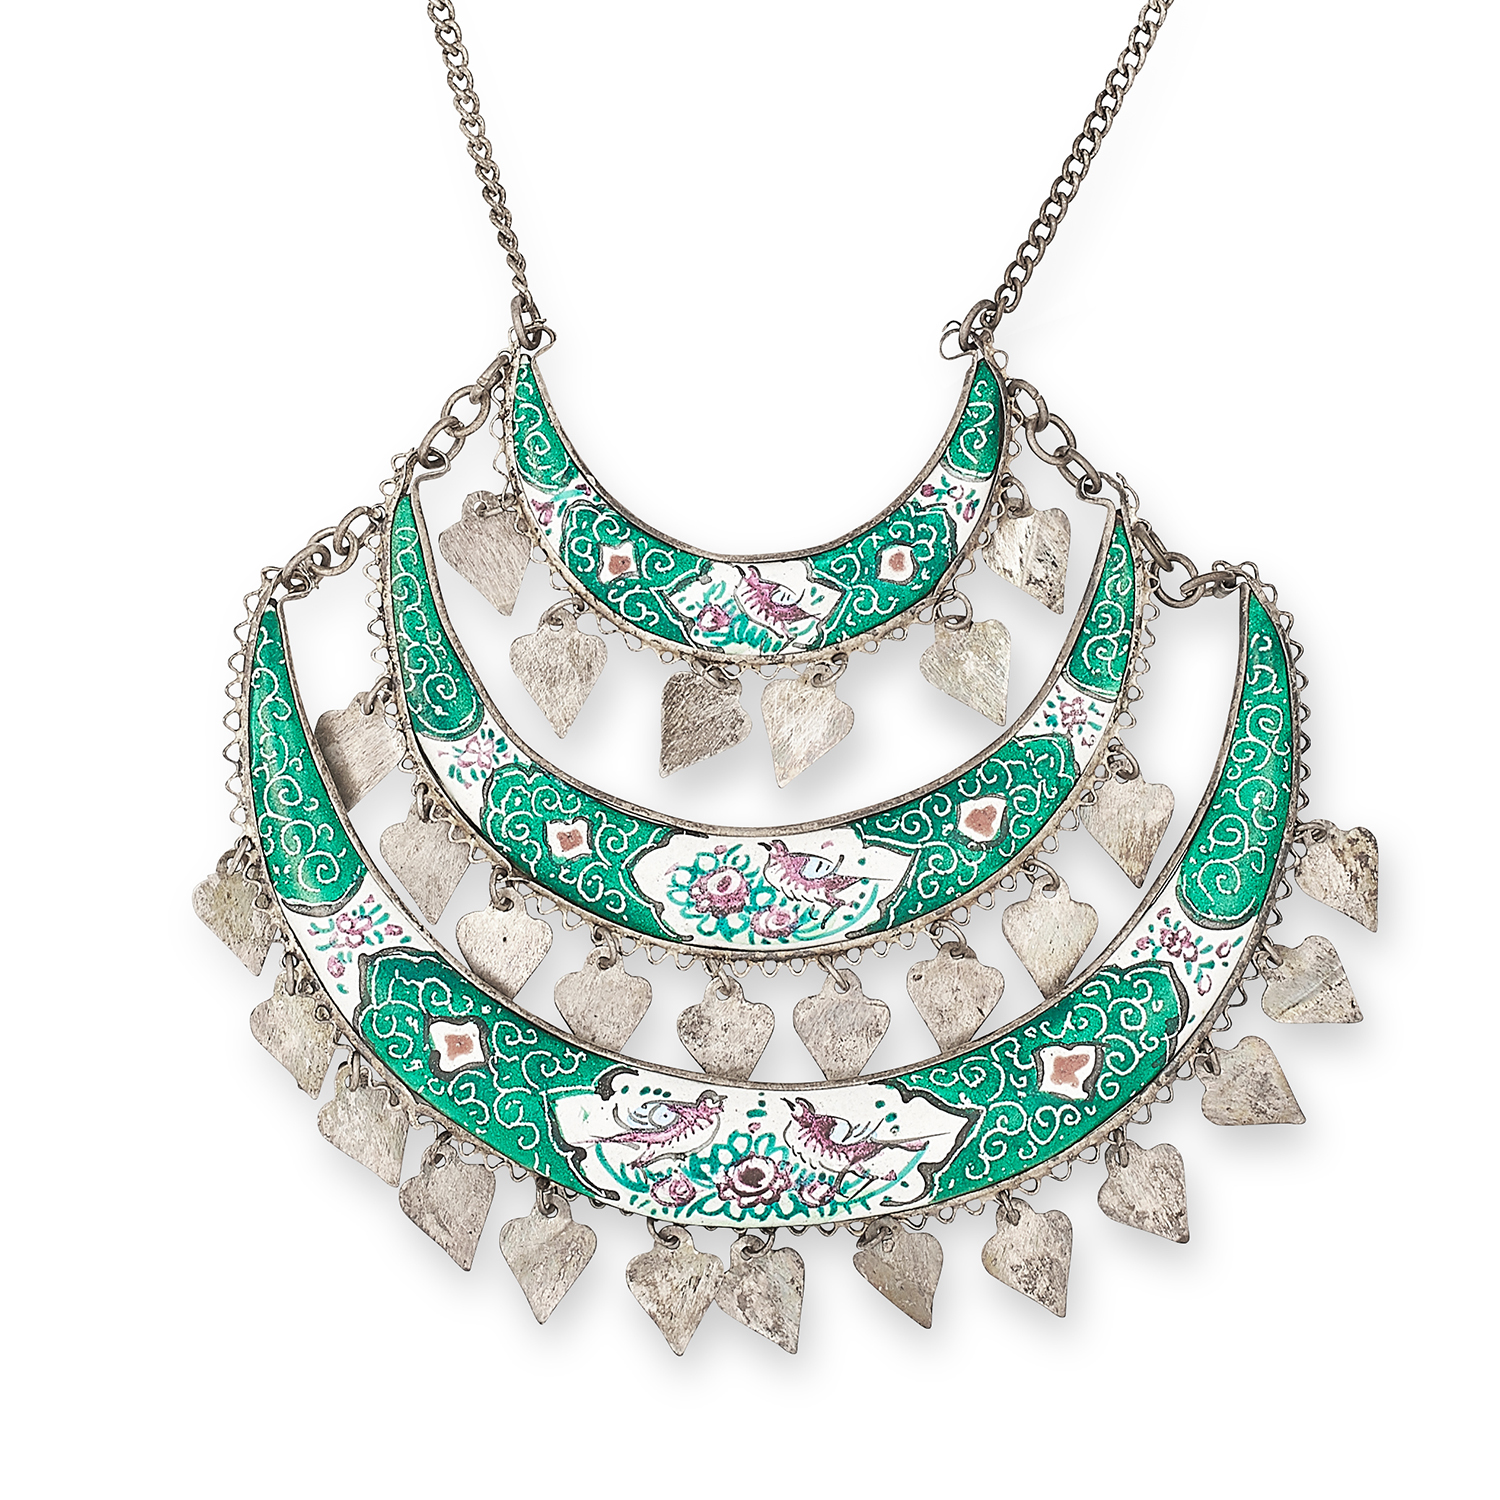 Los 280 - ENAMEL SWAG NECKLACE set with varicoloured enamel depicting scenes with birds and flowers and